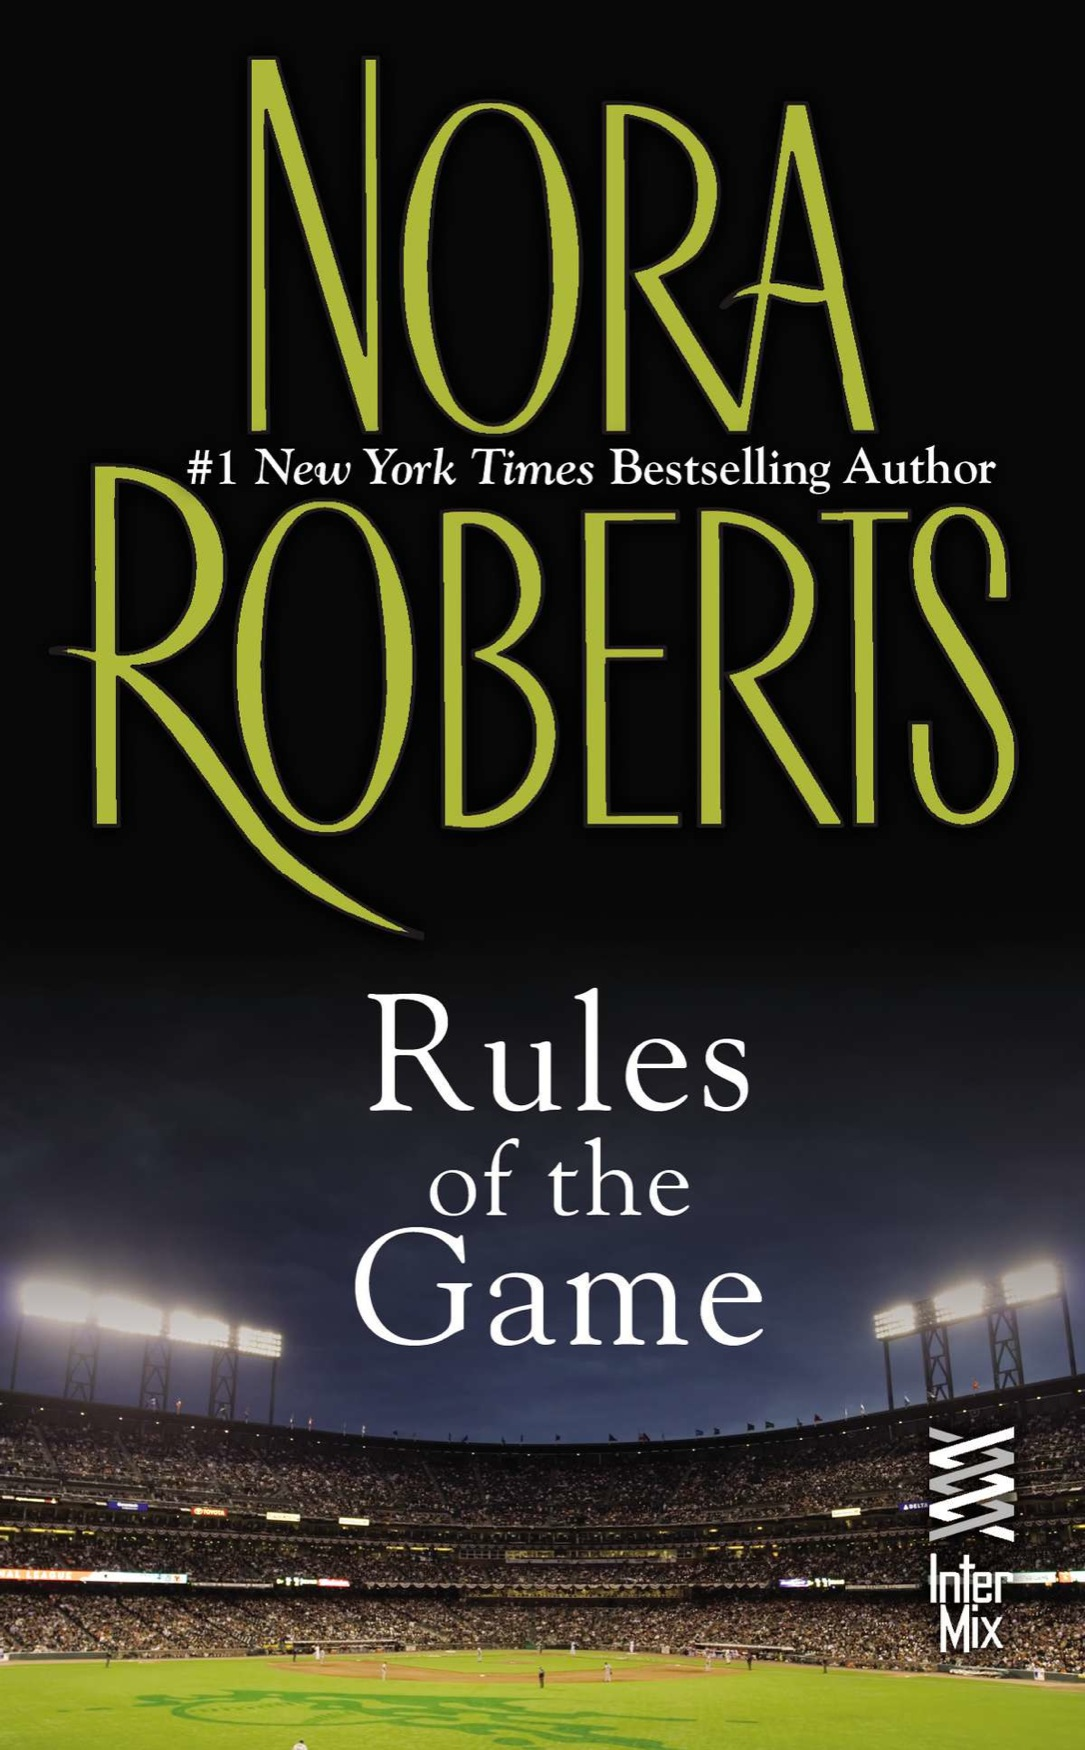 Rules of the Game (2012) by Nora Roberts